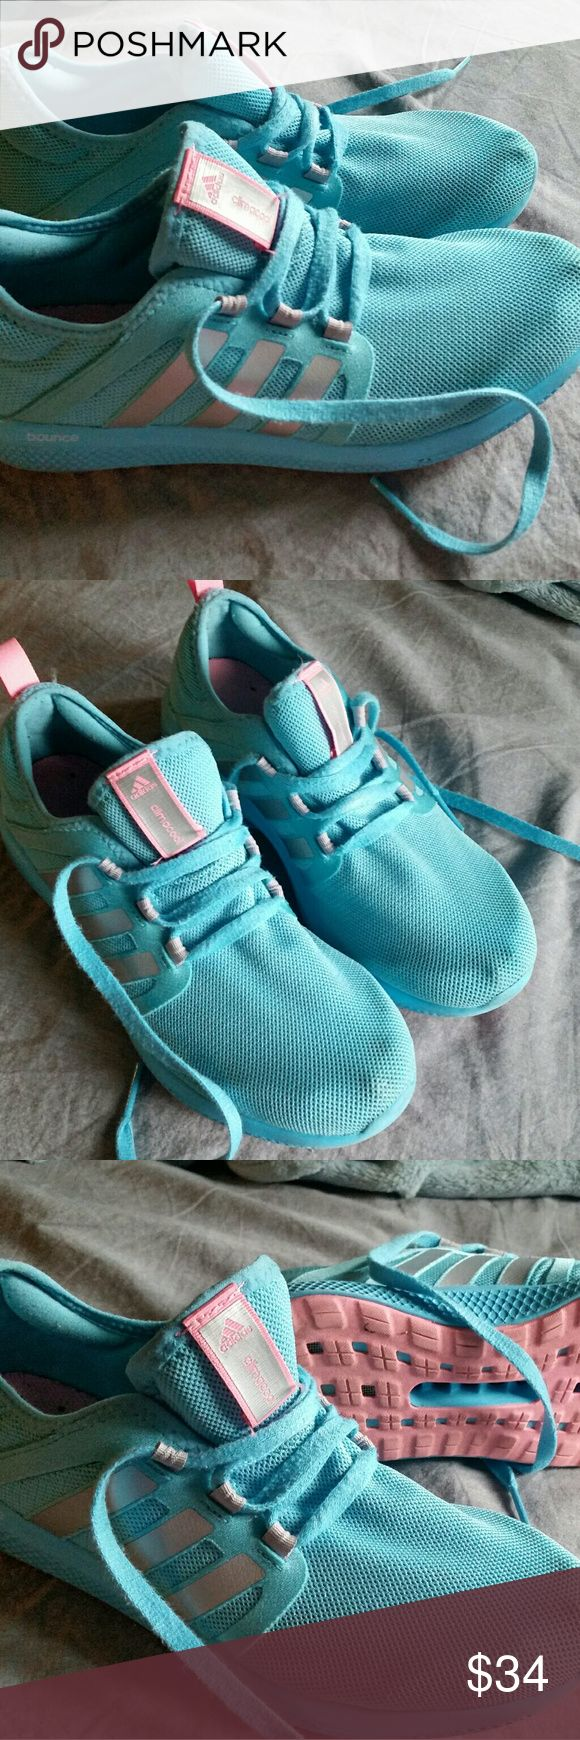 Adidas bounce Worn but, still in great condition, comfortable and cute. Climacool bounce Adidas sneakers size 8 women's. adidas Shoes Athletic Shoes